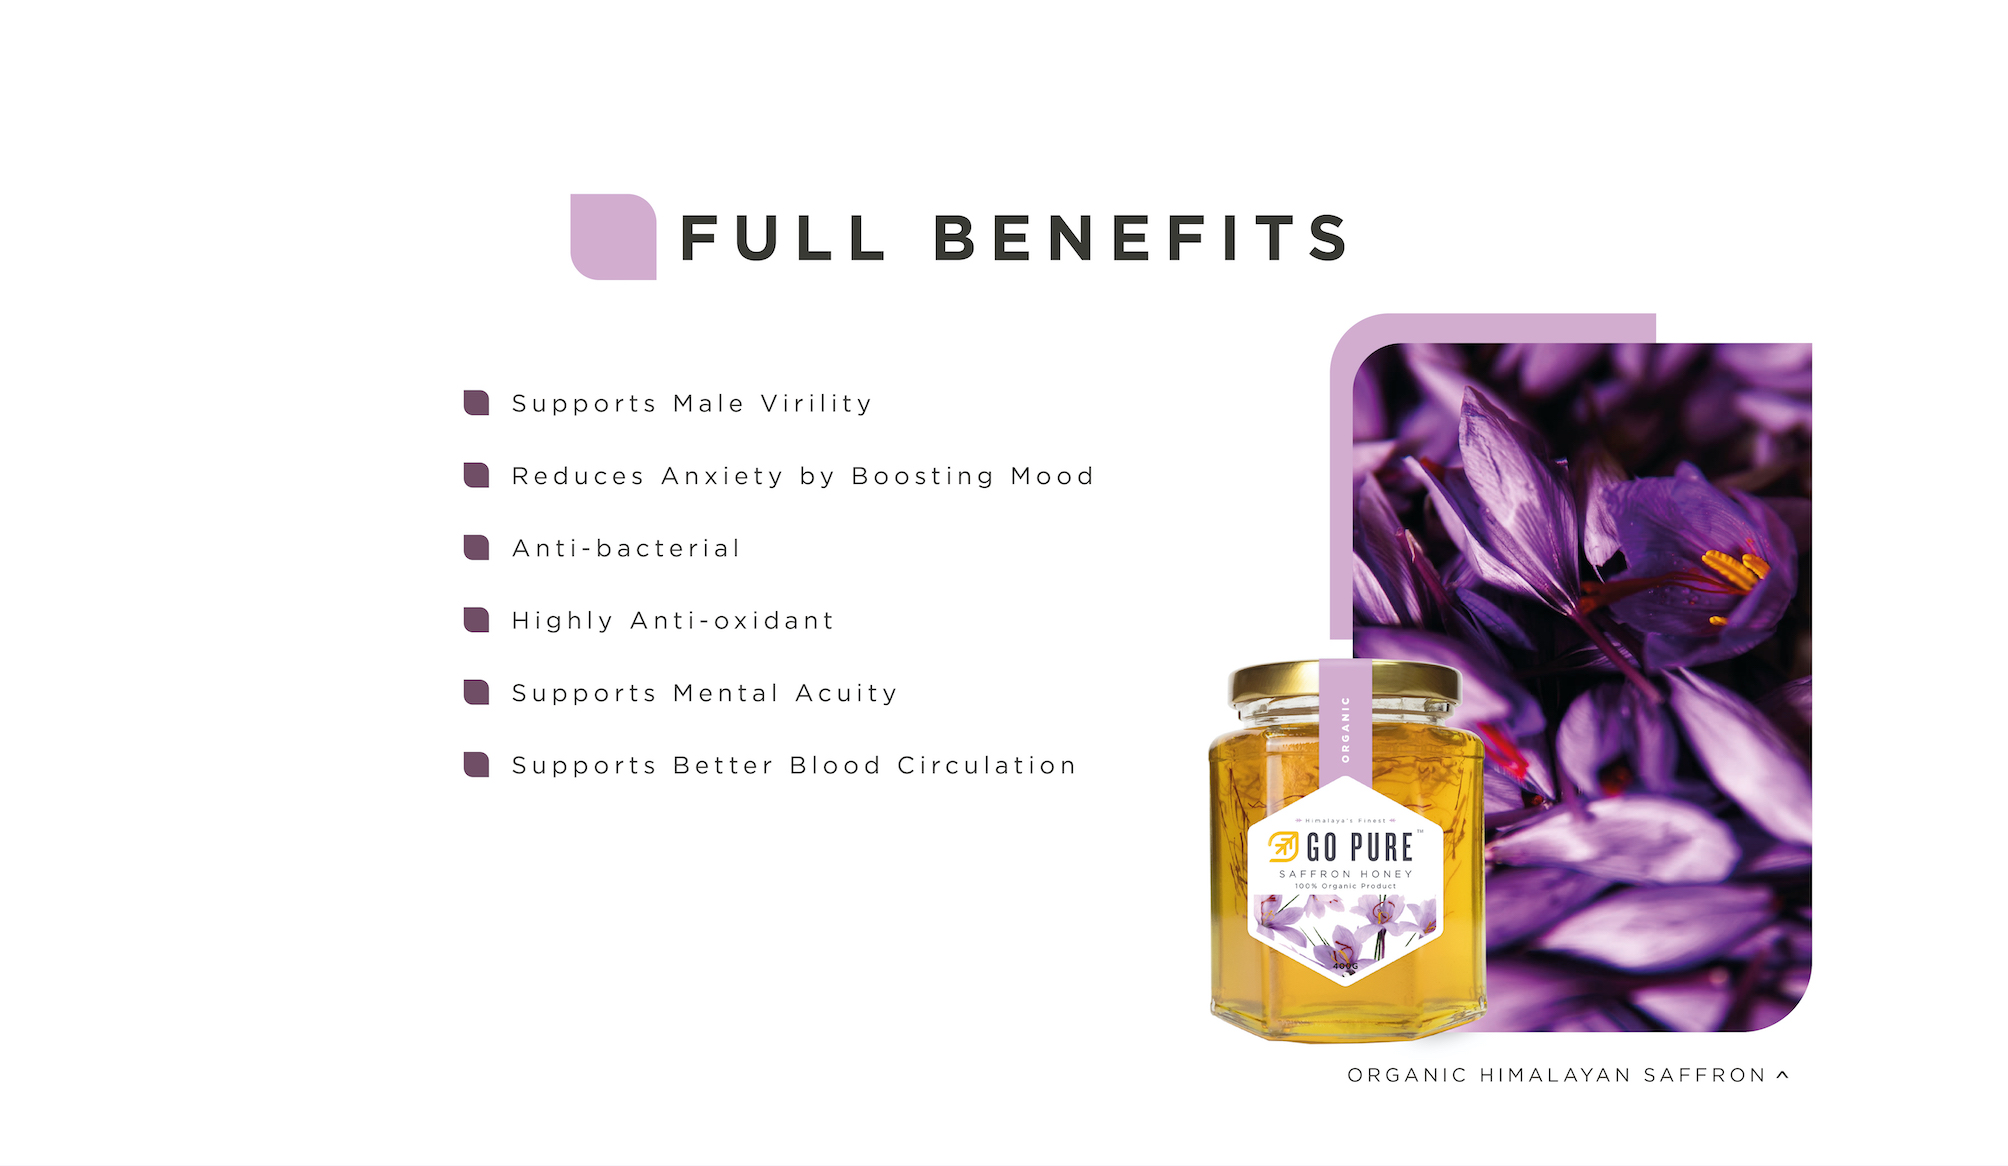 Organic Saffron Honey. - Supports Male Virility; - Reduces Anxiety by Boosting Mood; - Anti-bacterial; - Highly Anti-oxidant; - Supports Mental Acuity; - Supports Better Blood Circulation